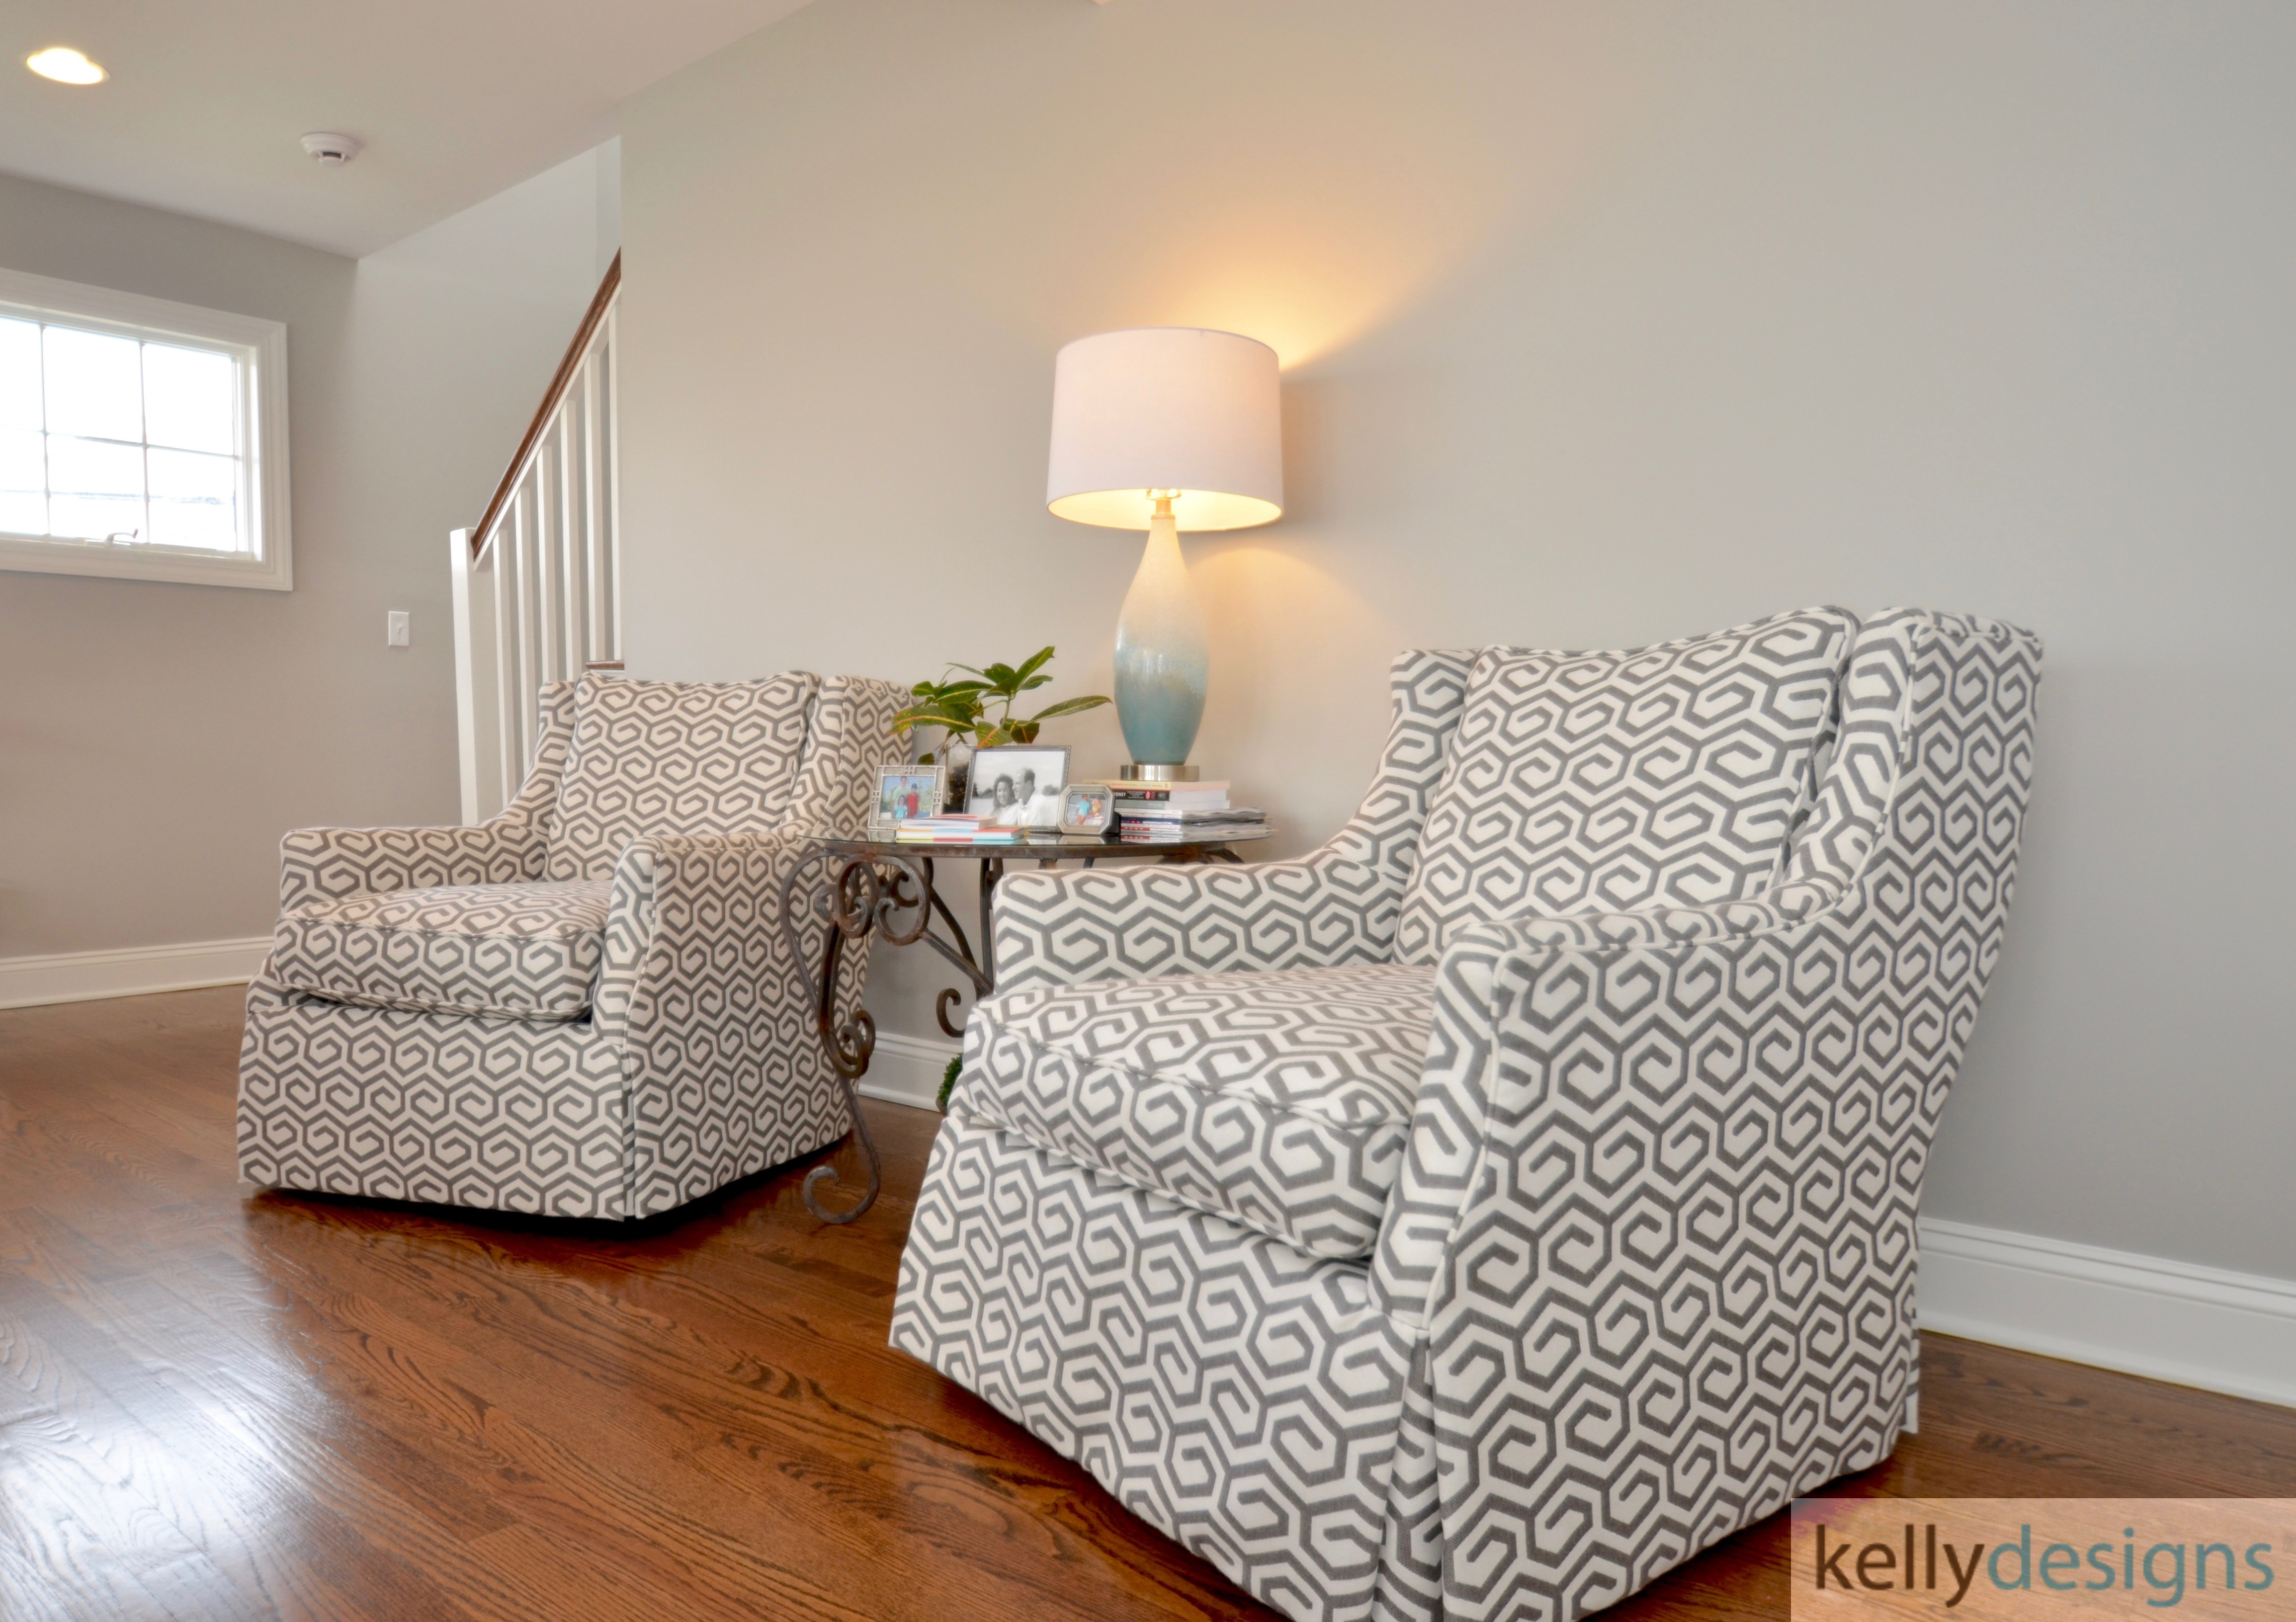 county us guided kind spaces furniture we join create greenwich about connecticut drawn of fairfield in one new ours end by caanan client interior where a and at from center to the s imagination ct designers design strive modern